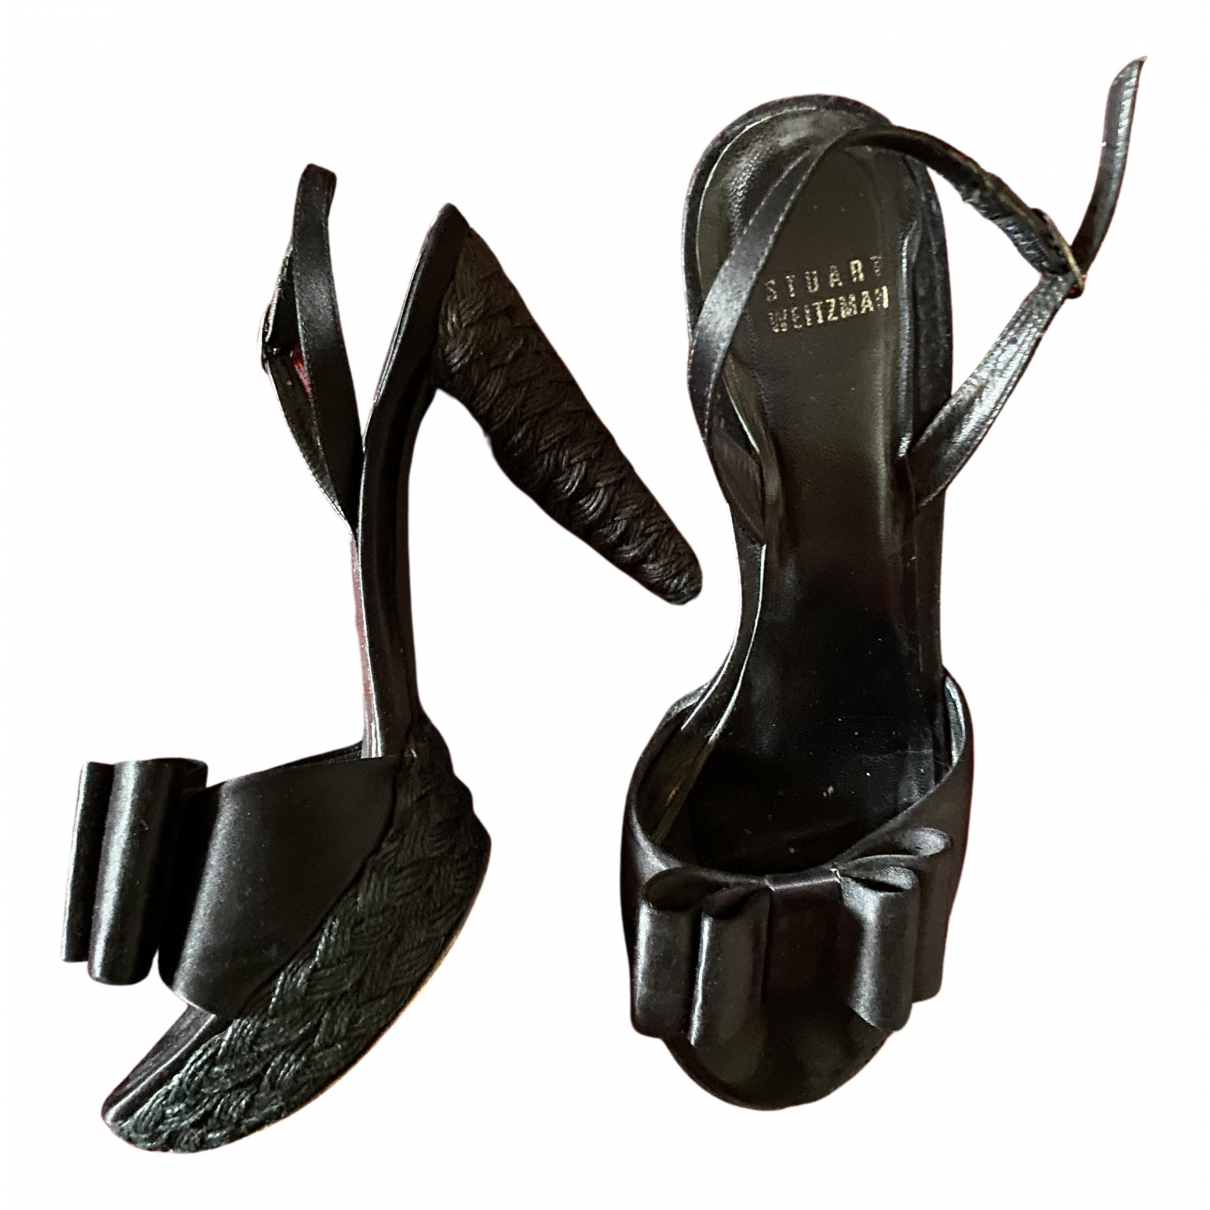 Stuart Weitzman N Black Leather Sandals for Women 39 EU